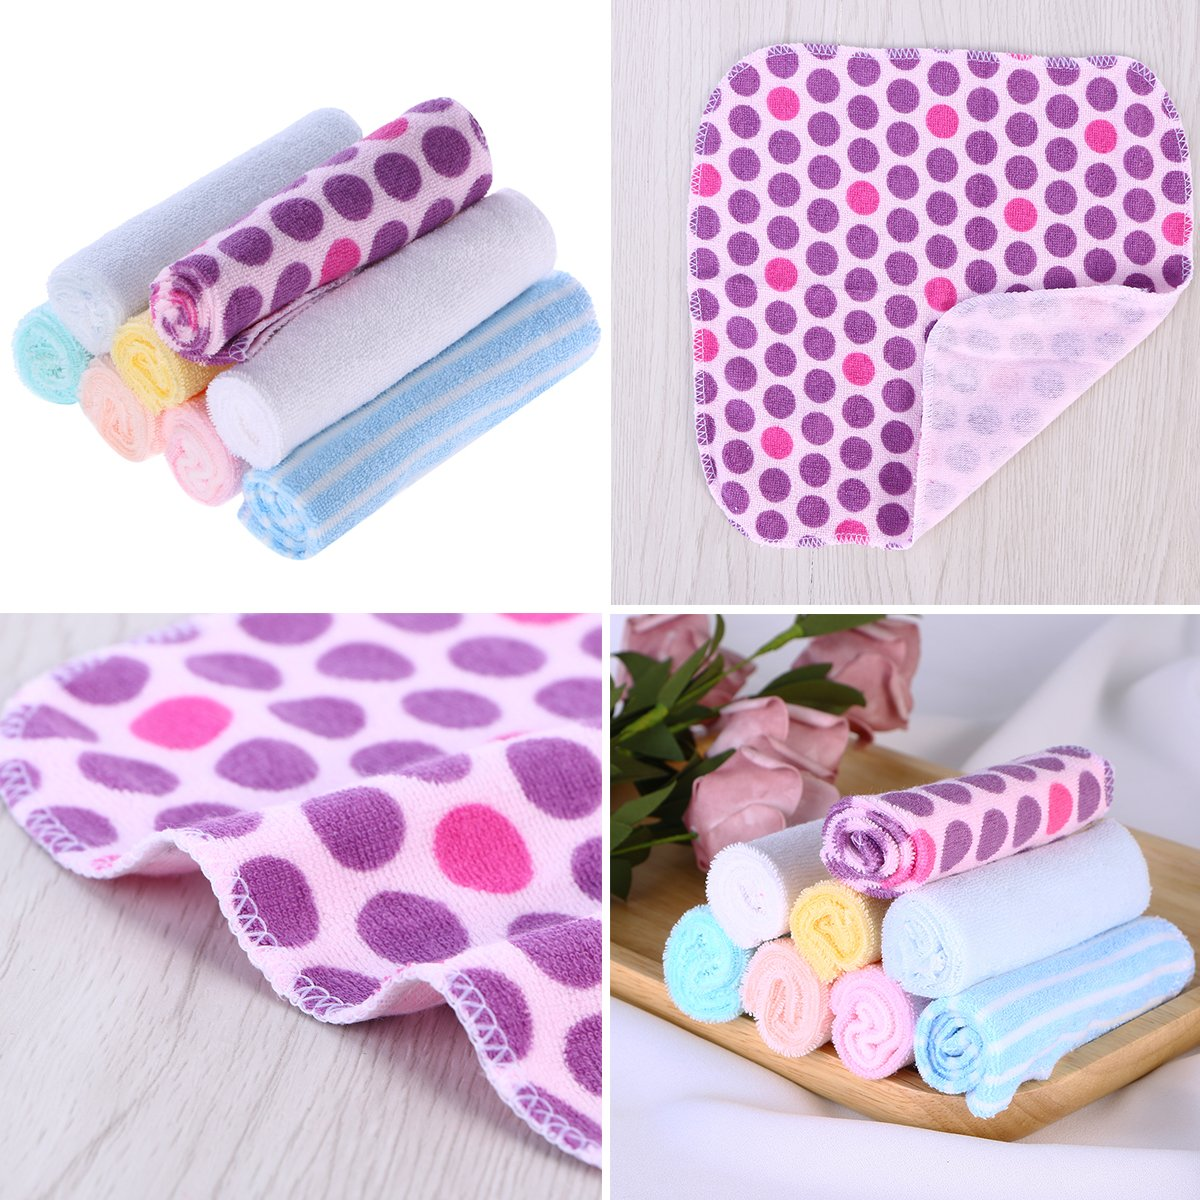 YeahiBaby 7.9 Baby Washcloths Face Towels - Soft Cotton, Pack of 8